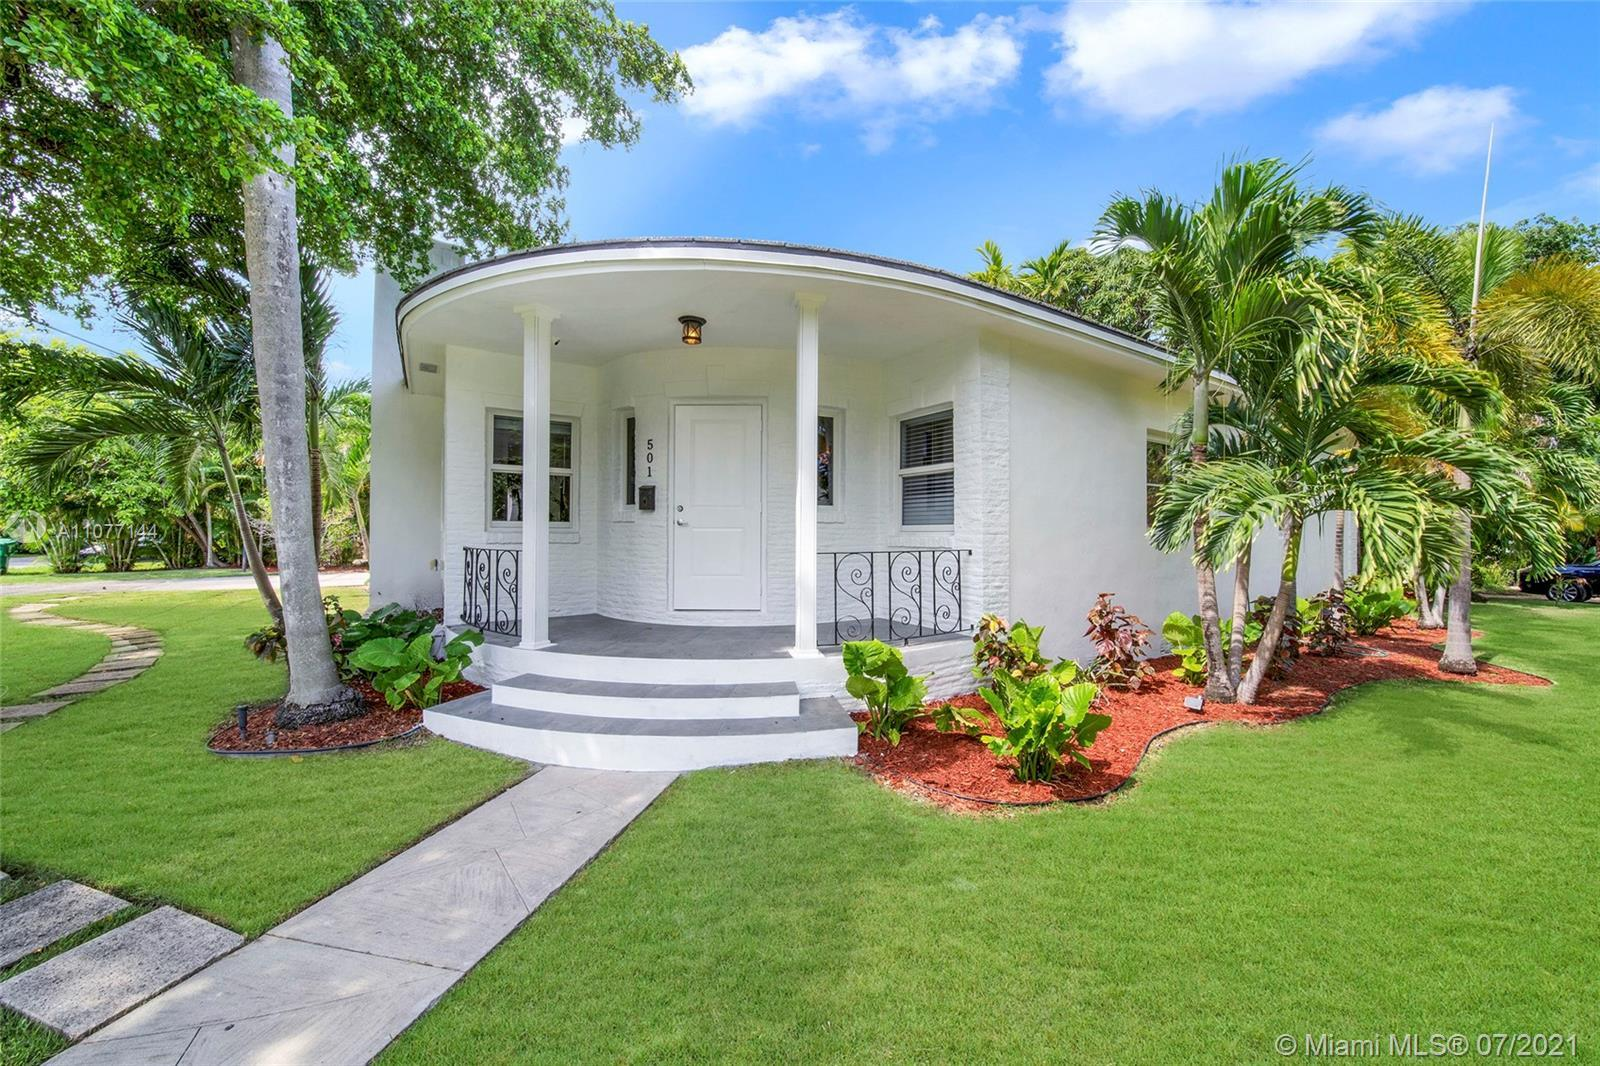 Superb mid-century house in beautiful Morningside, one of Miami's premier gated communities. This dr